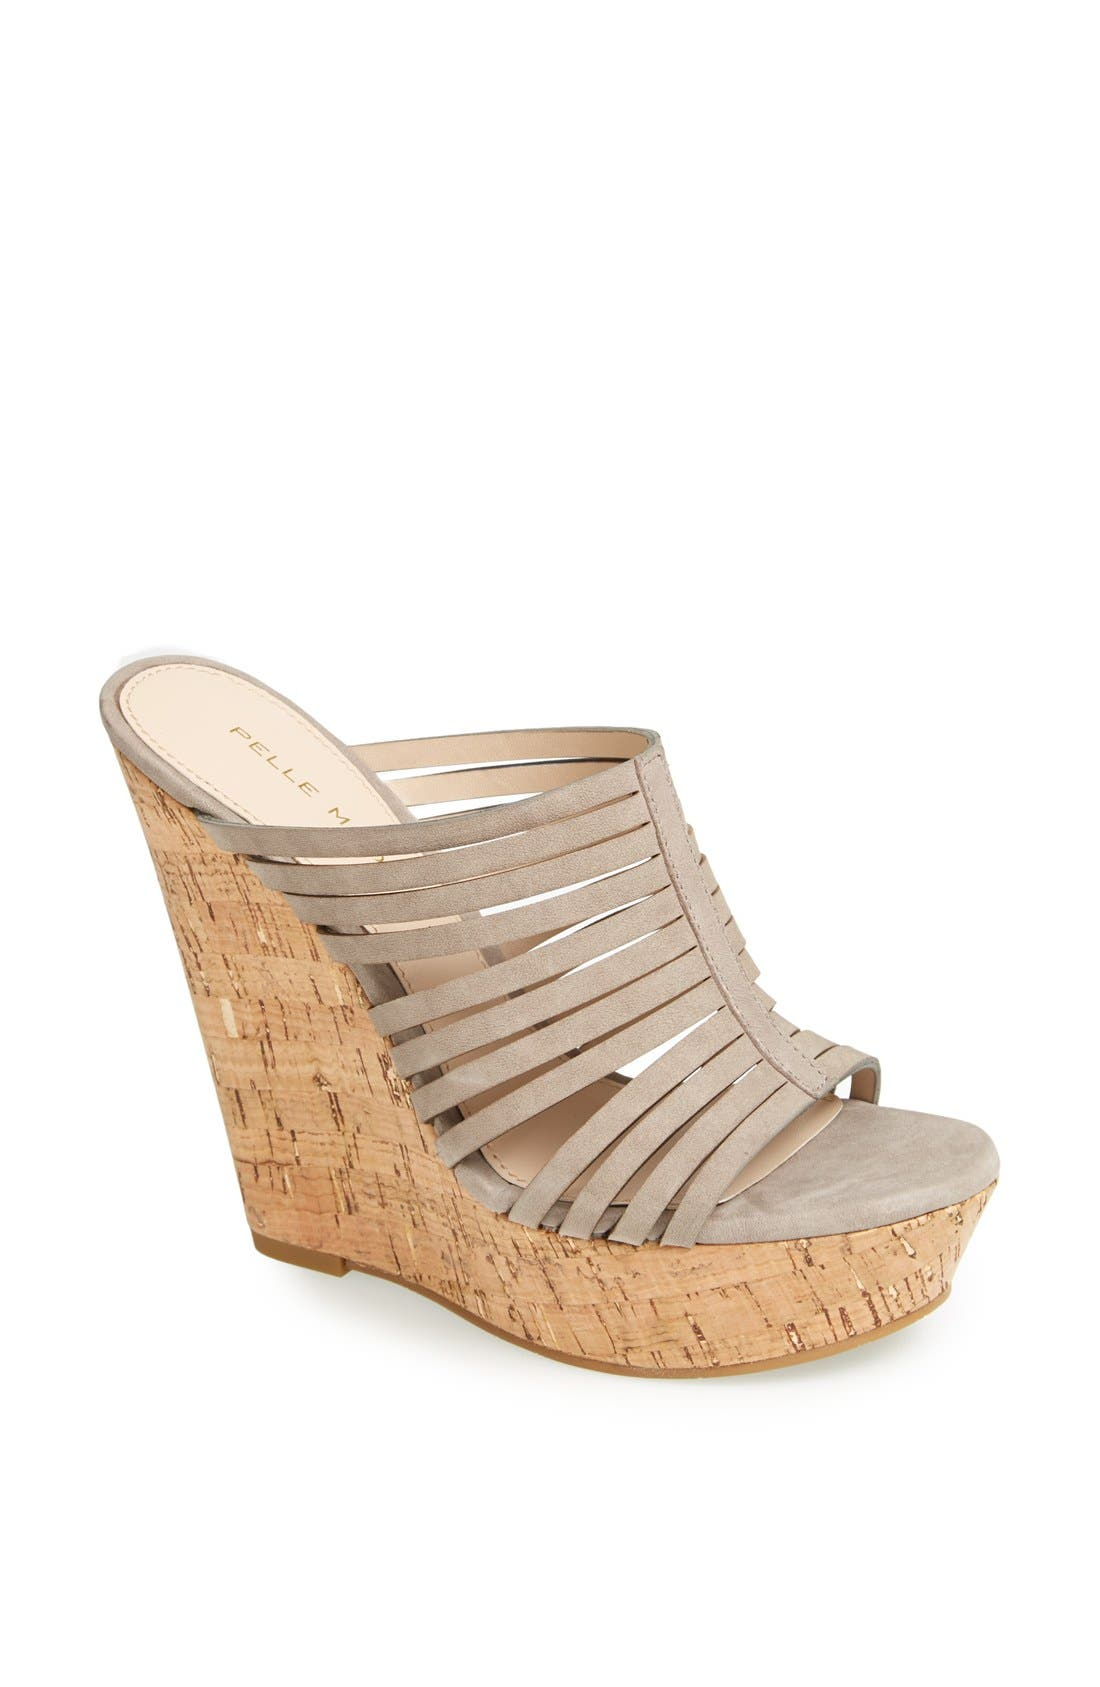 Alternate Image 1 Selected - Pelle Moda 'Leroy' Wedge Sandal